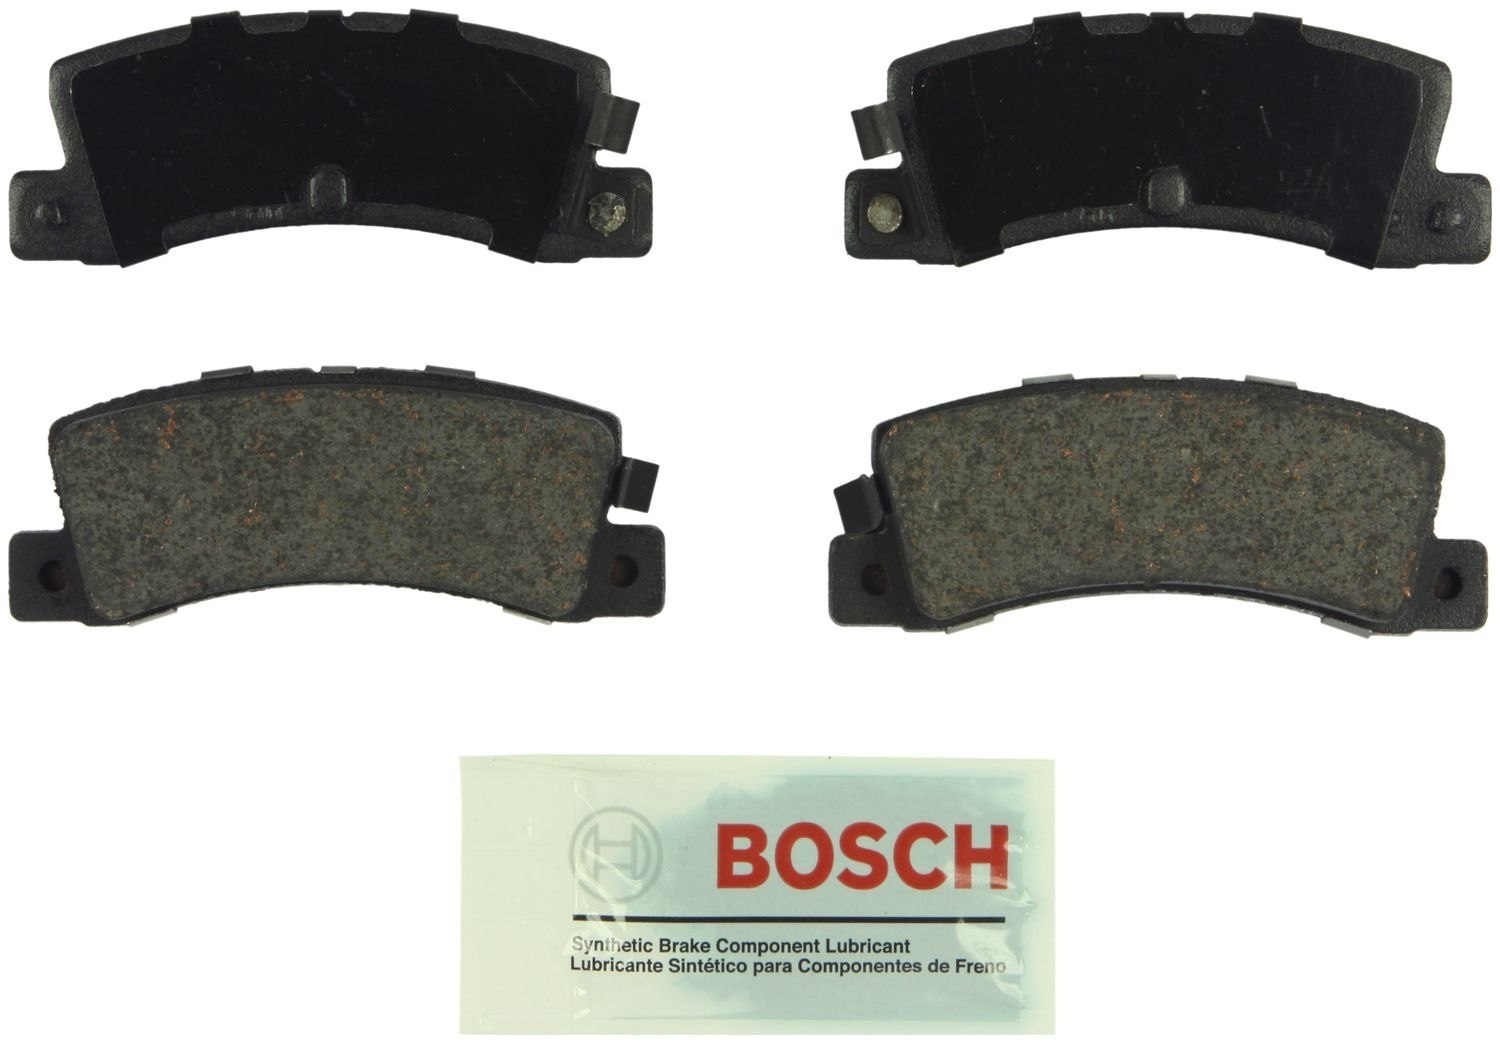 BOSCH BRAKE - Bosch Blue Brake Pads (Rear) - BQC BE352